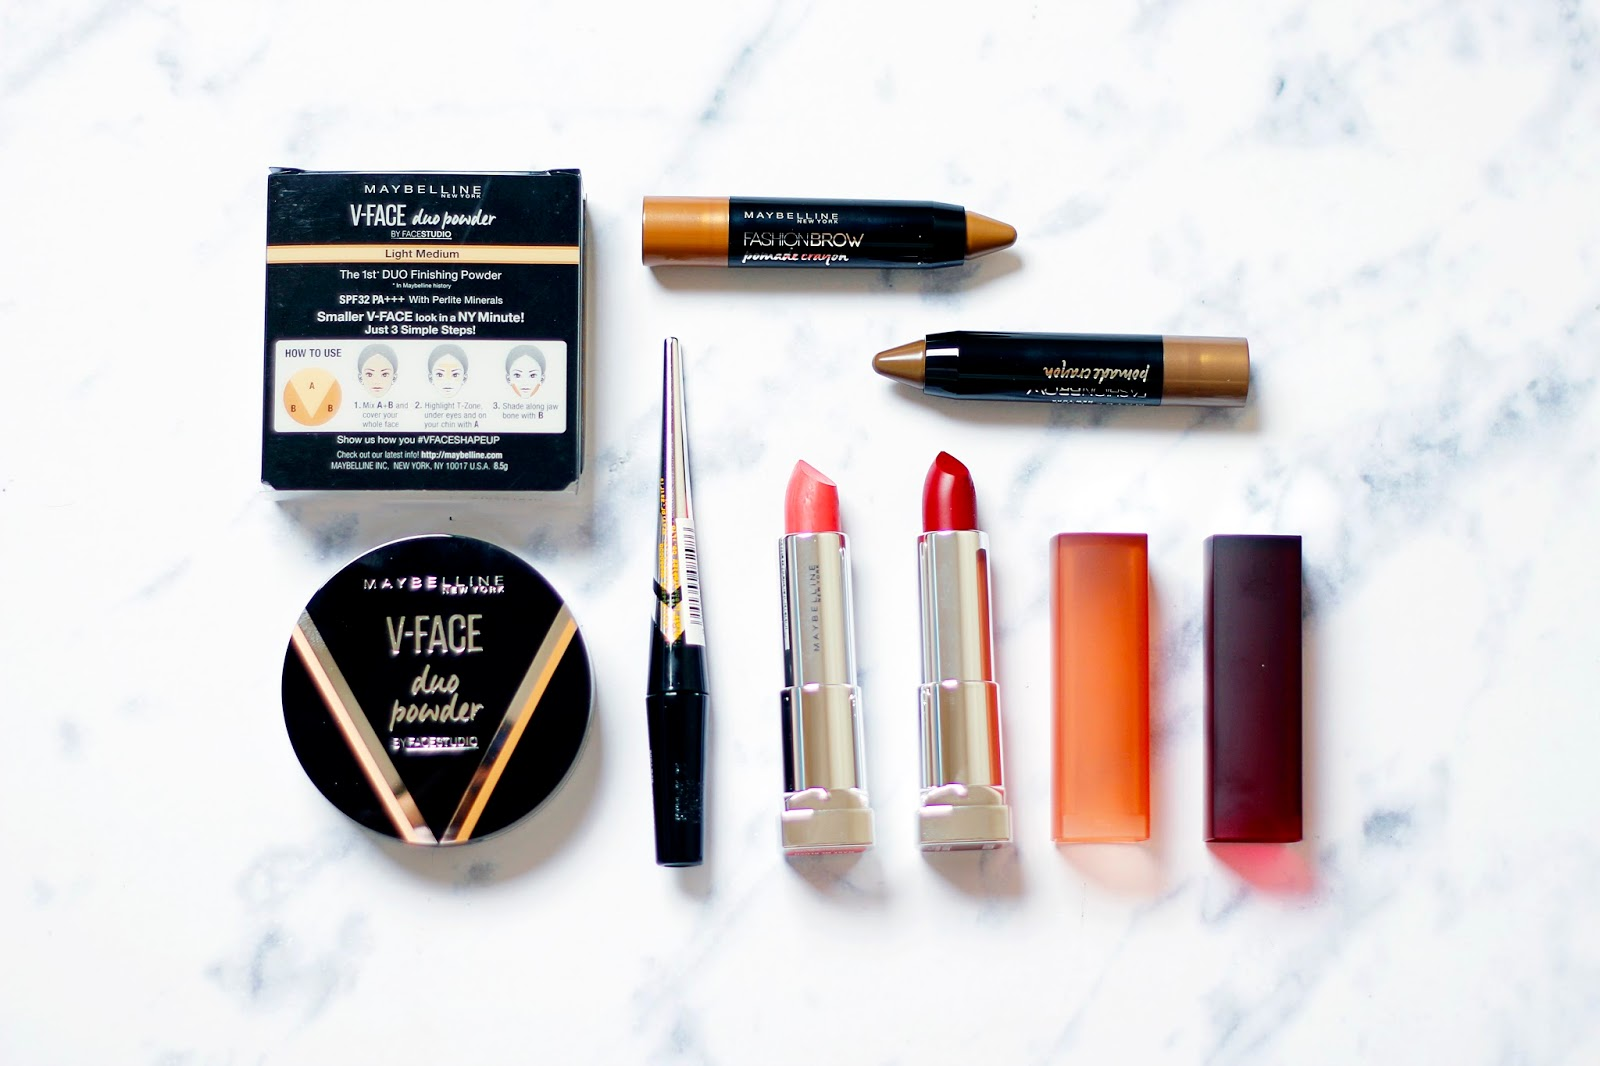 Basic One Brand Makeup With Maybelline Pastello Rivoluzione Meyne V Face Its So Kind Of That They Gave Us Almost Full Range Product When We Attend Their Event Few Months Back What Drew My Attention Was Brow